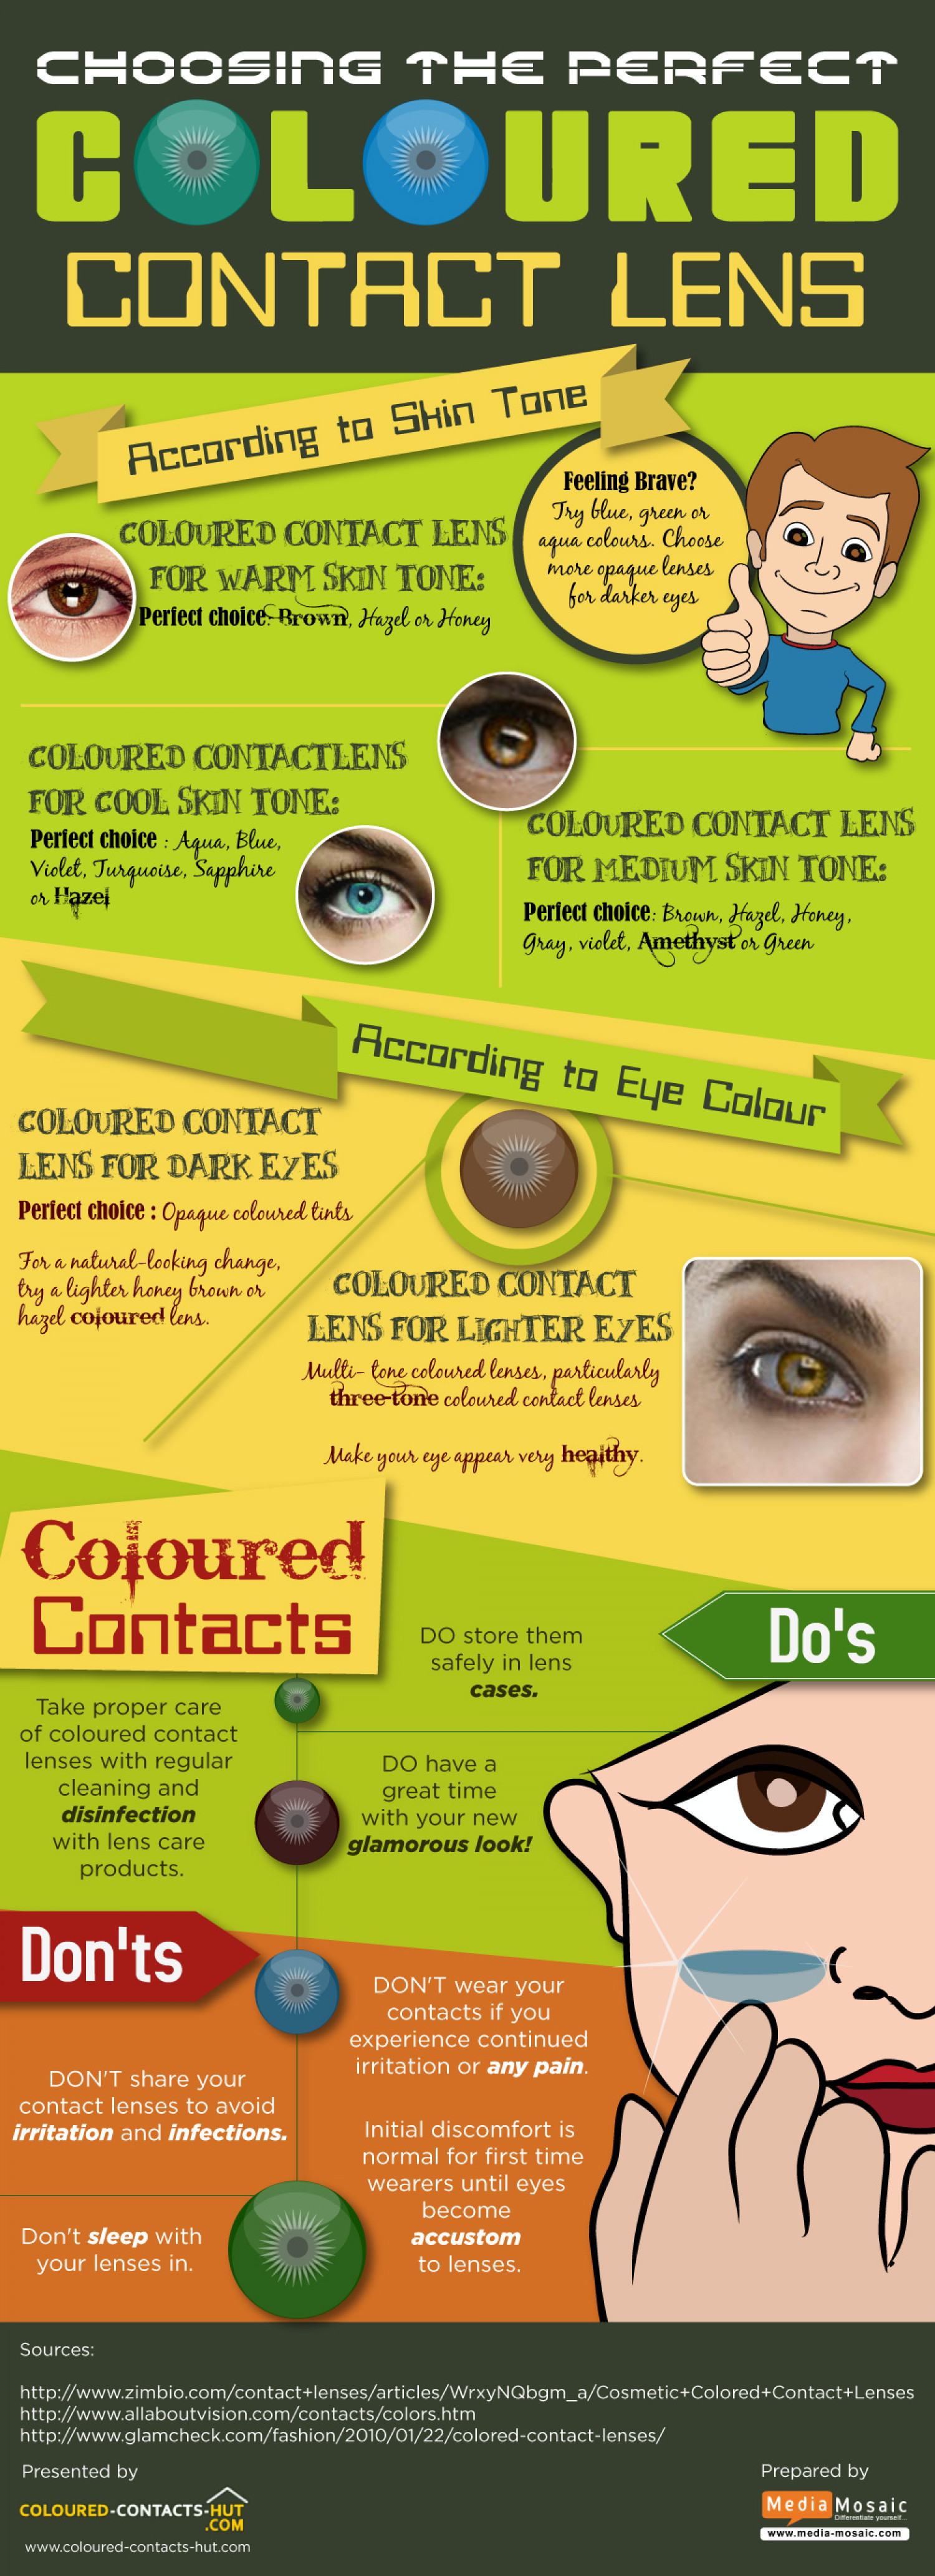 How To Get The Perfect Coloured Contact Lens? Infographic